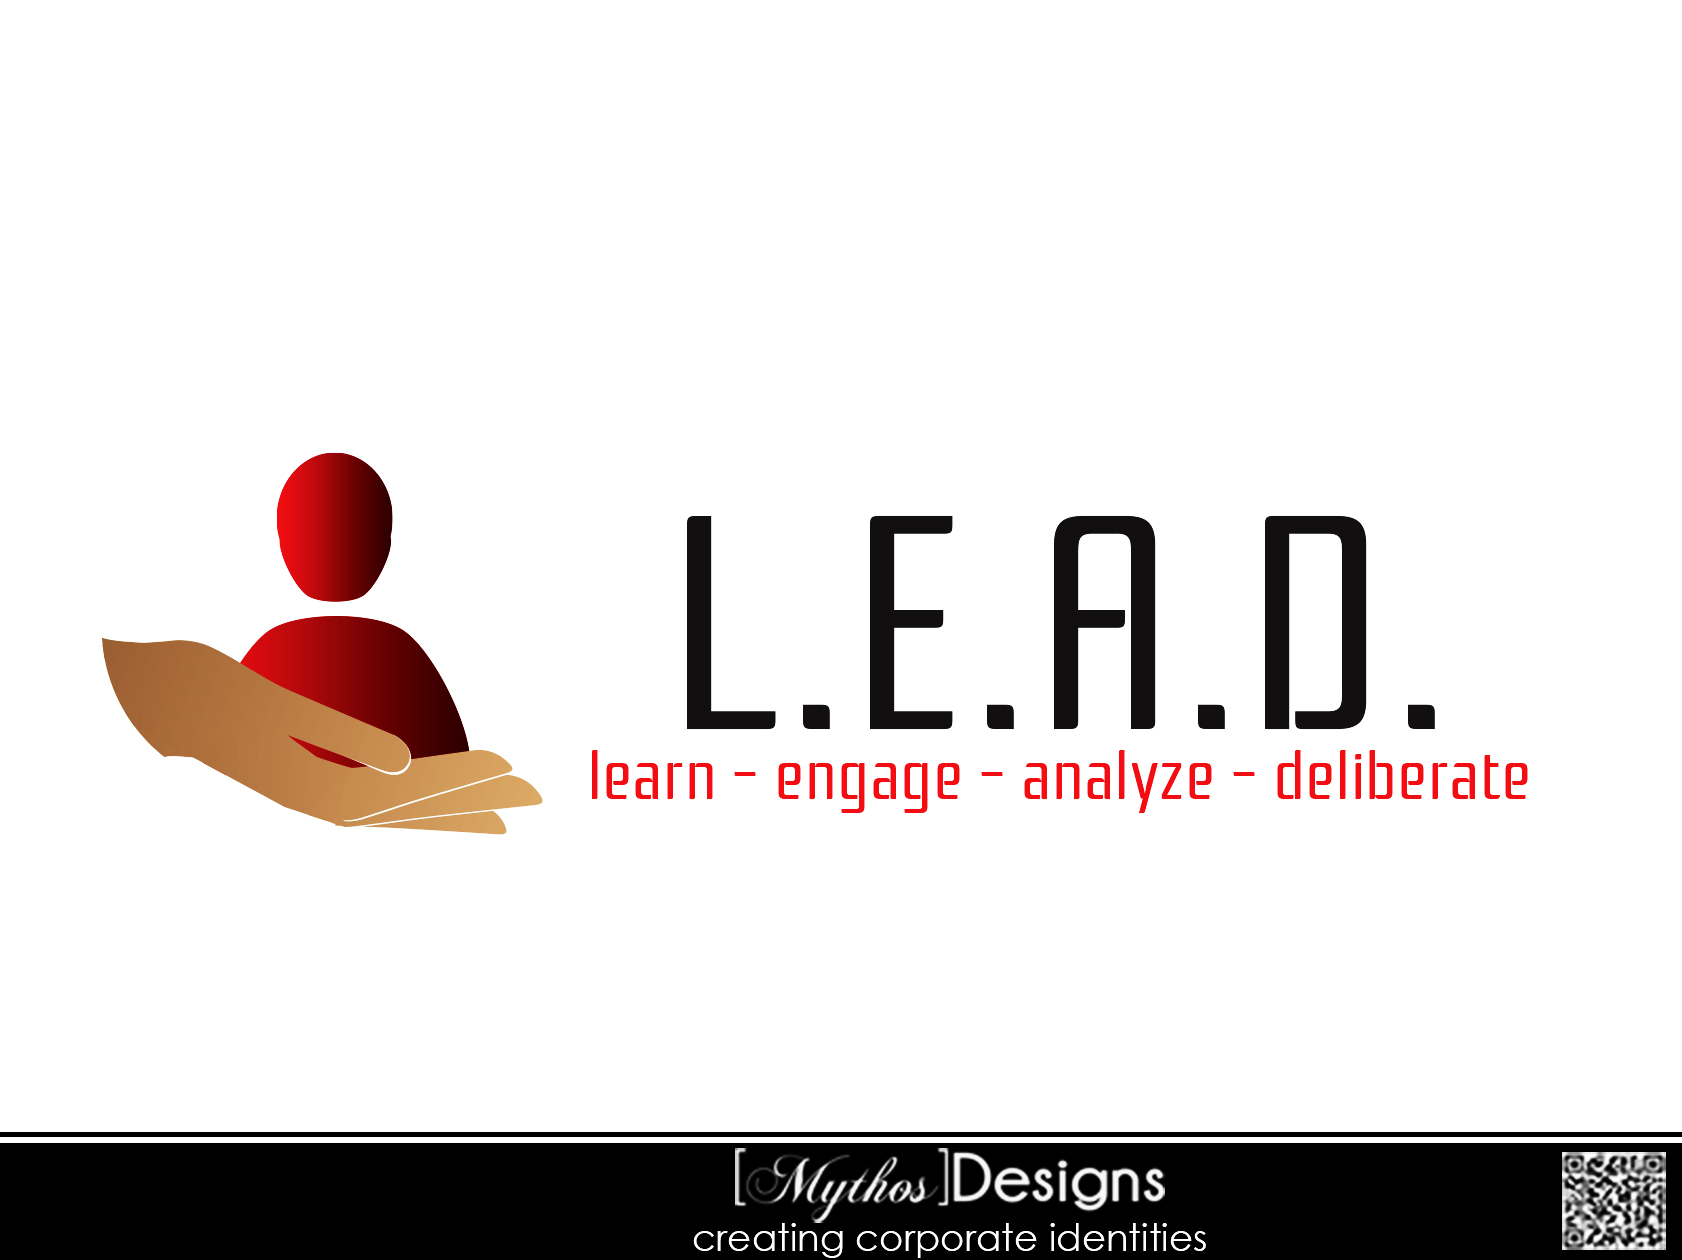 Logo Design by Mythos Designs - Entry No. 62 in the Logo Design Contest L.E.A.D. (learn, engage, analyze, deliberate) Logo Design.